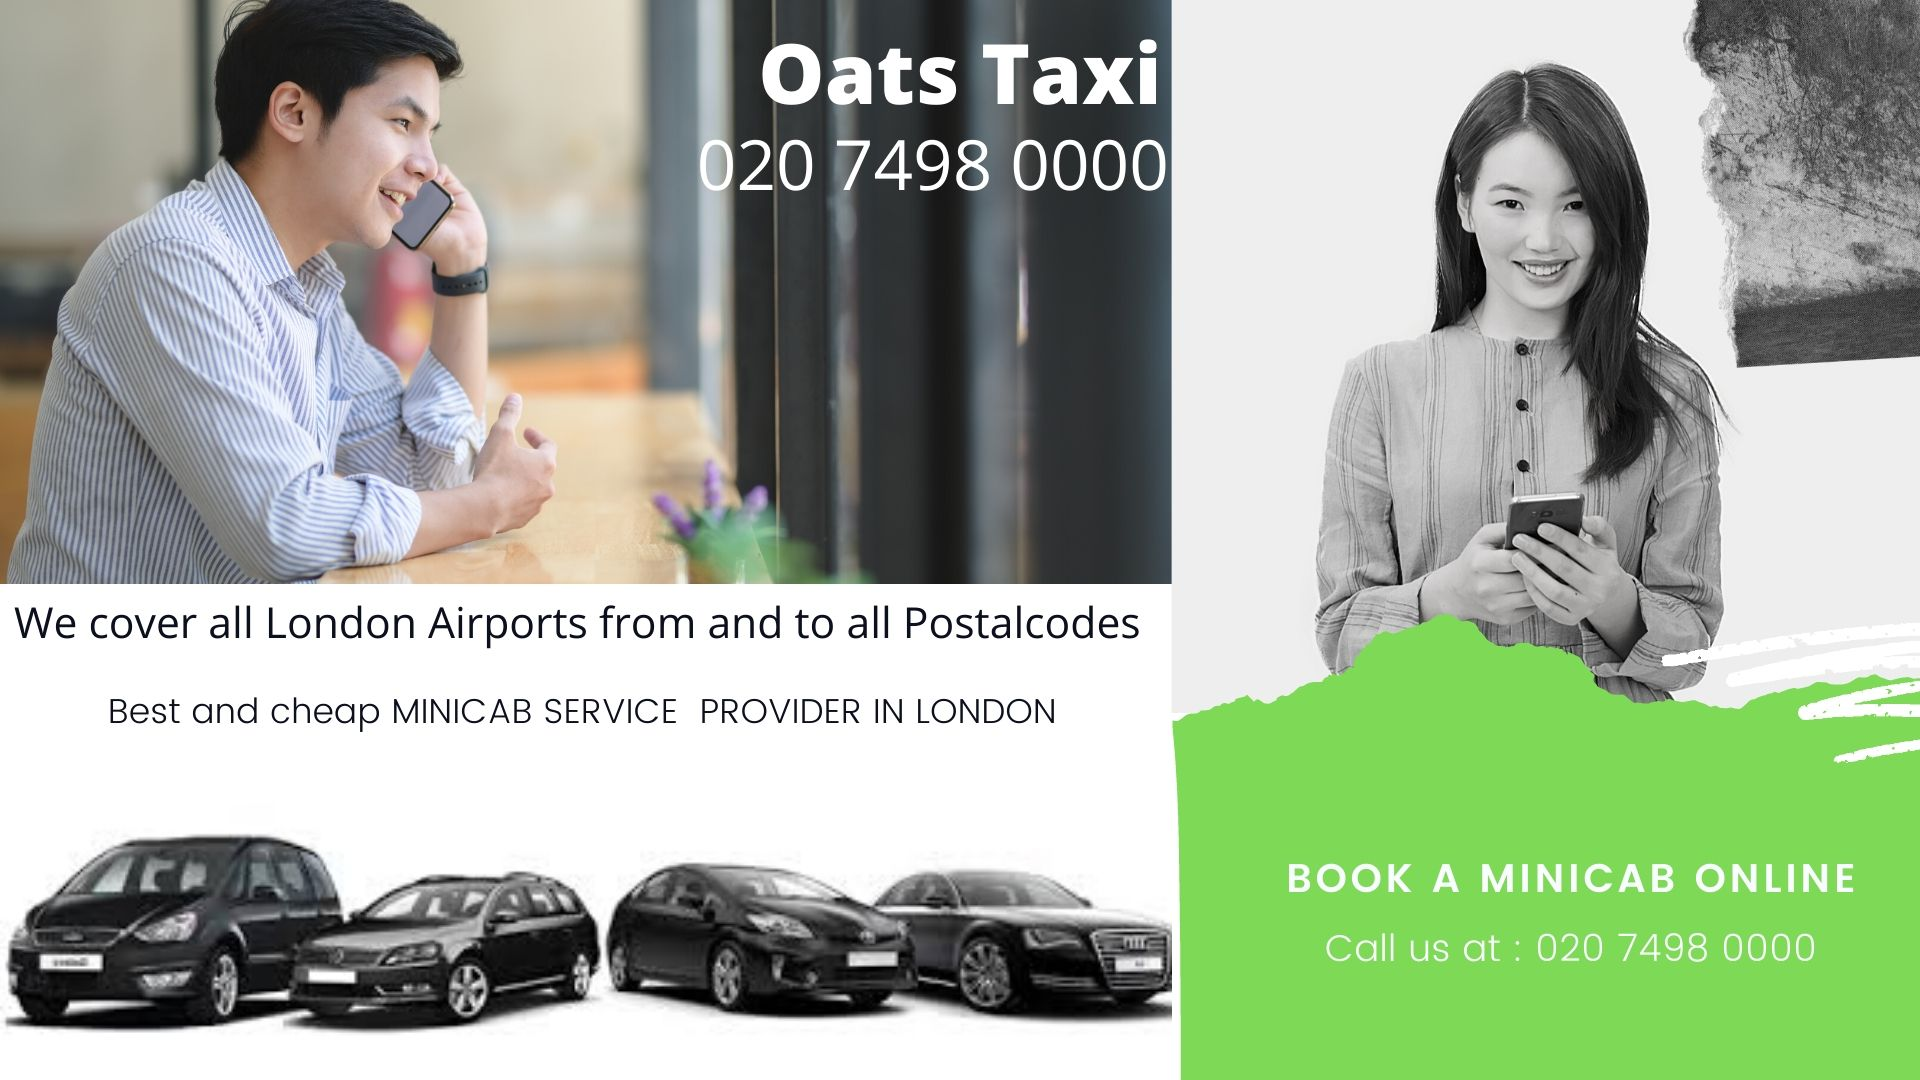 Nearest Taxi Office in Brixton Hill | Nearest Taxi Office in Gatwick Airport | Call now : 02074980000